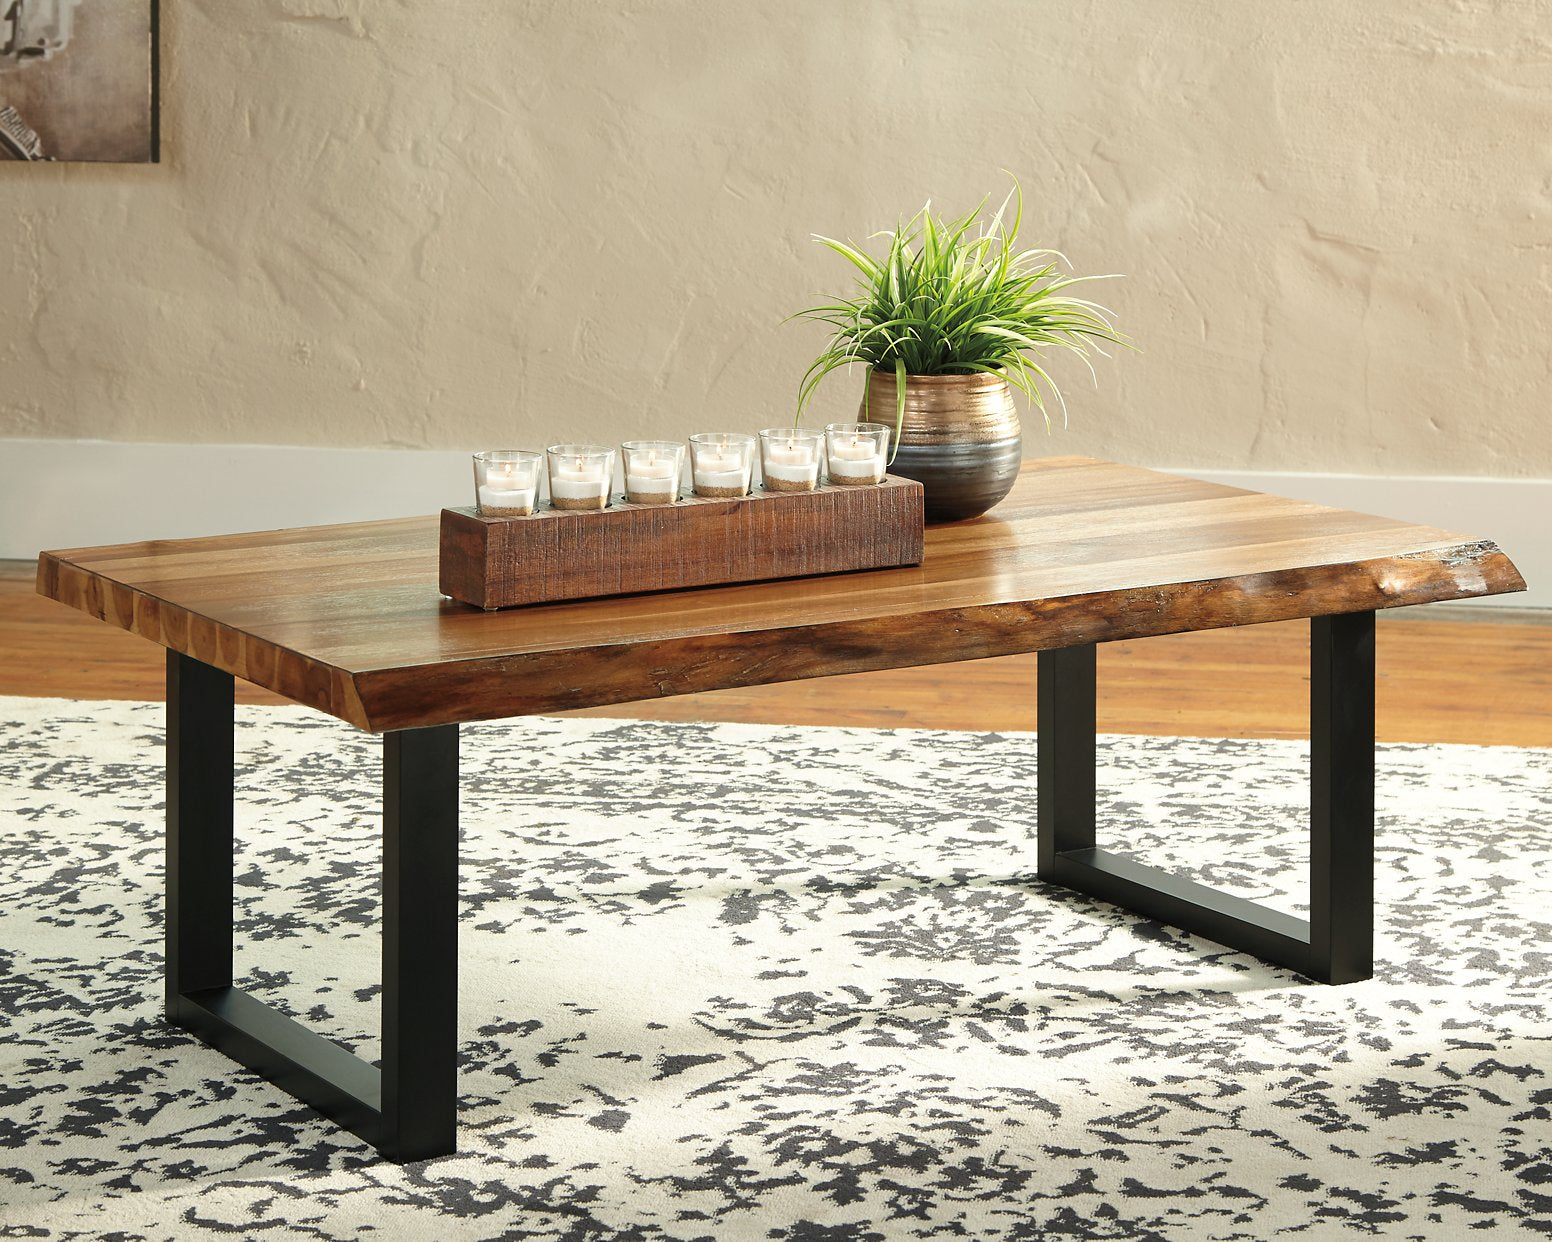 Brosward Signature Design by Ashley Cocktail Table image